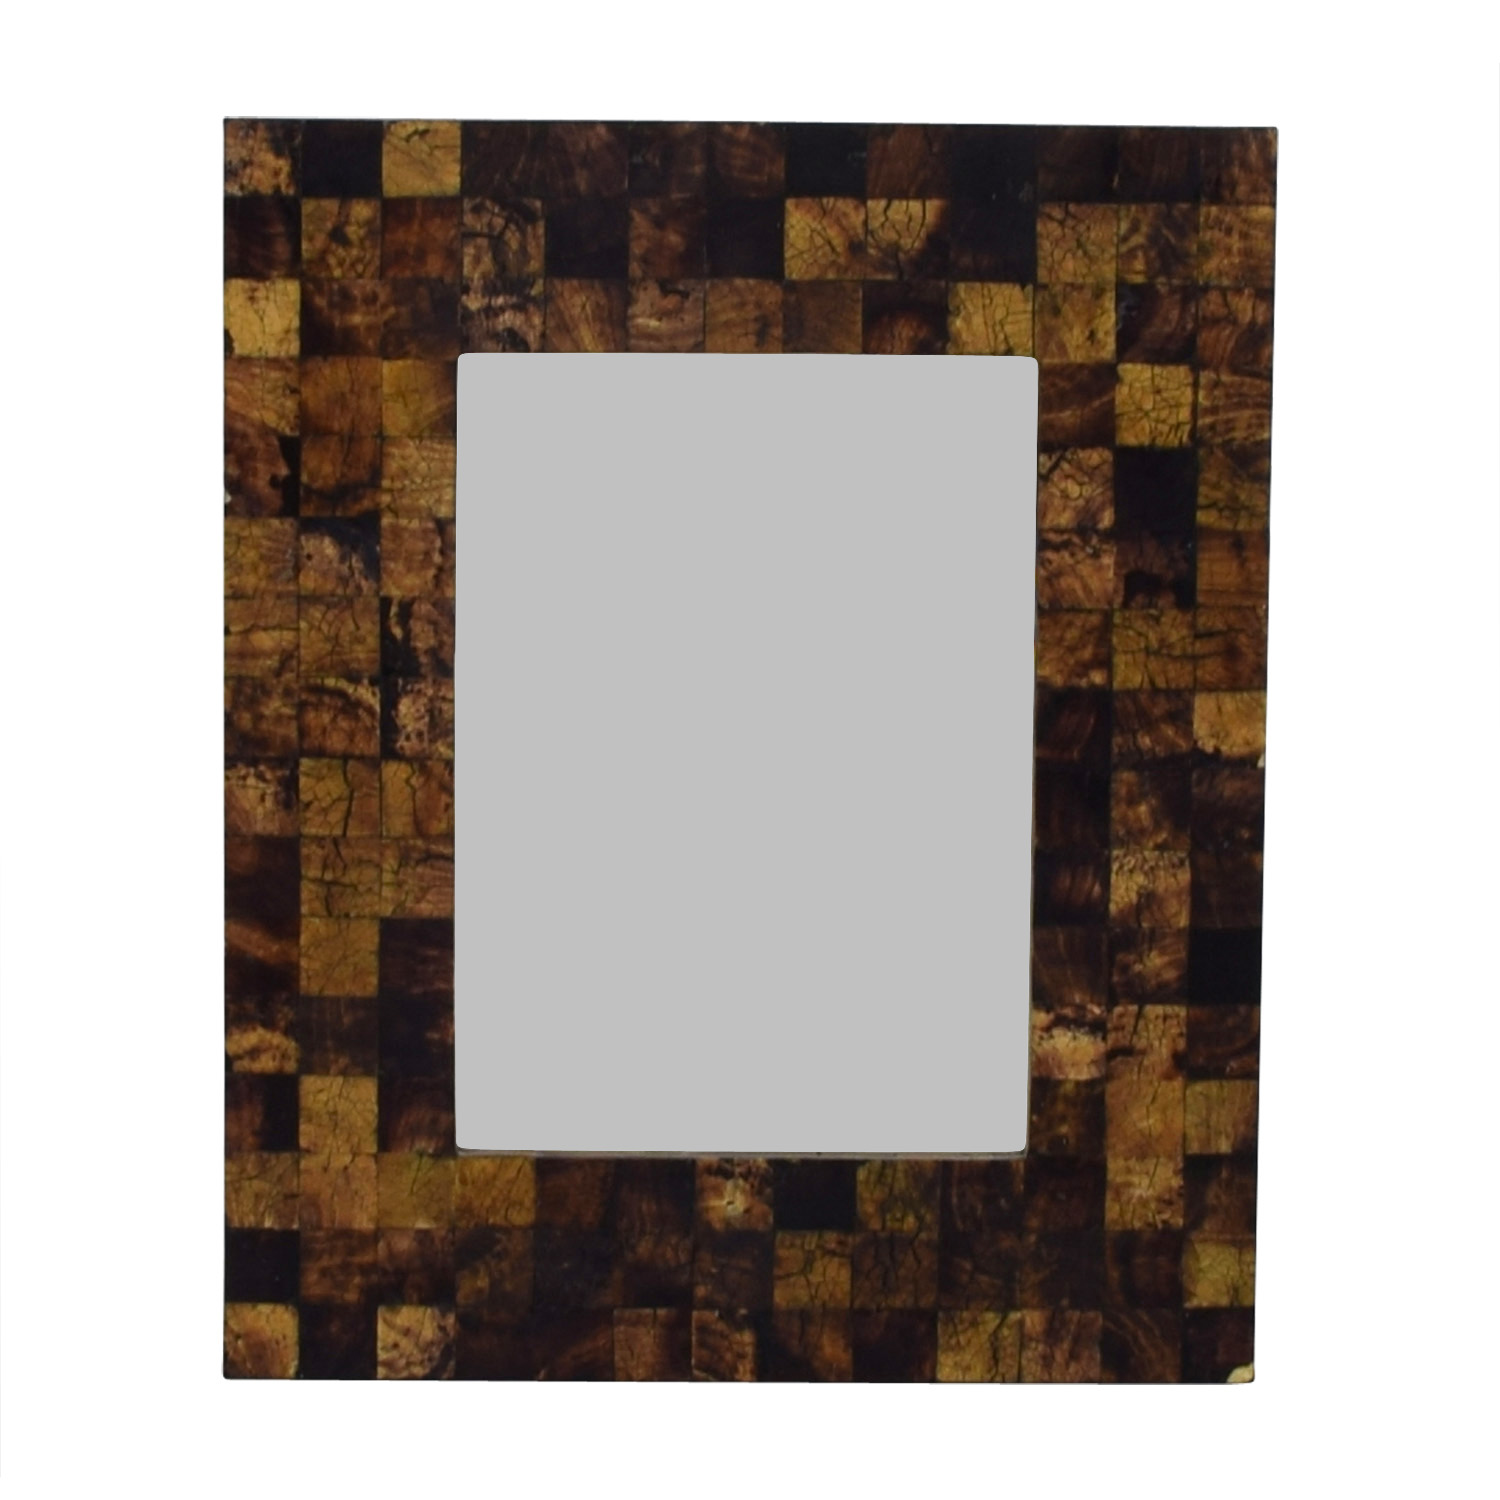 buy Pottery Barn Pottery Barn Crackled Wood Framed Wall Mirror online